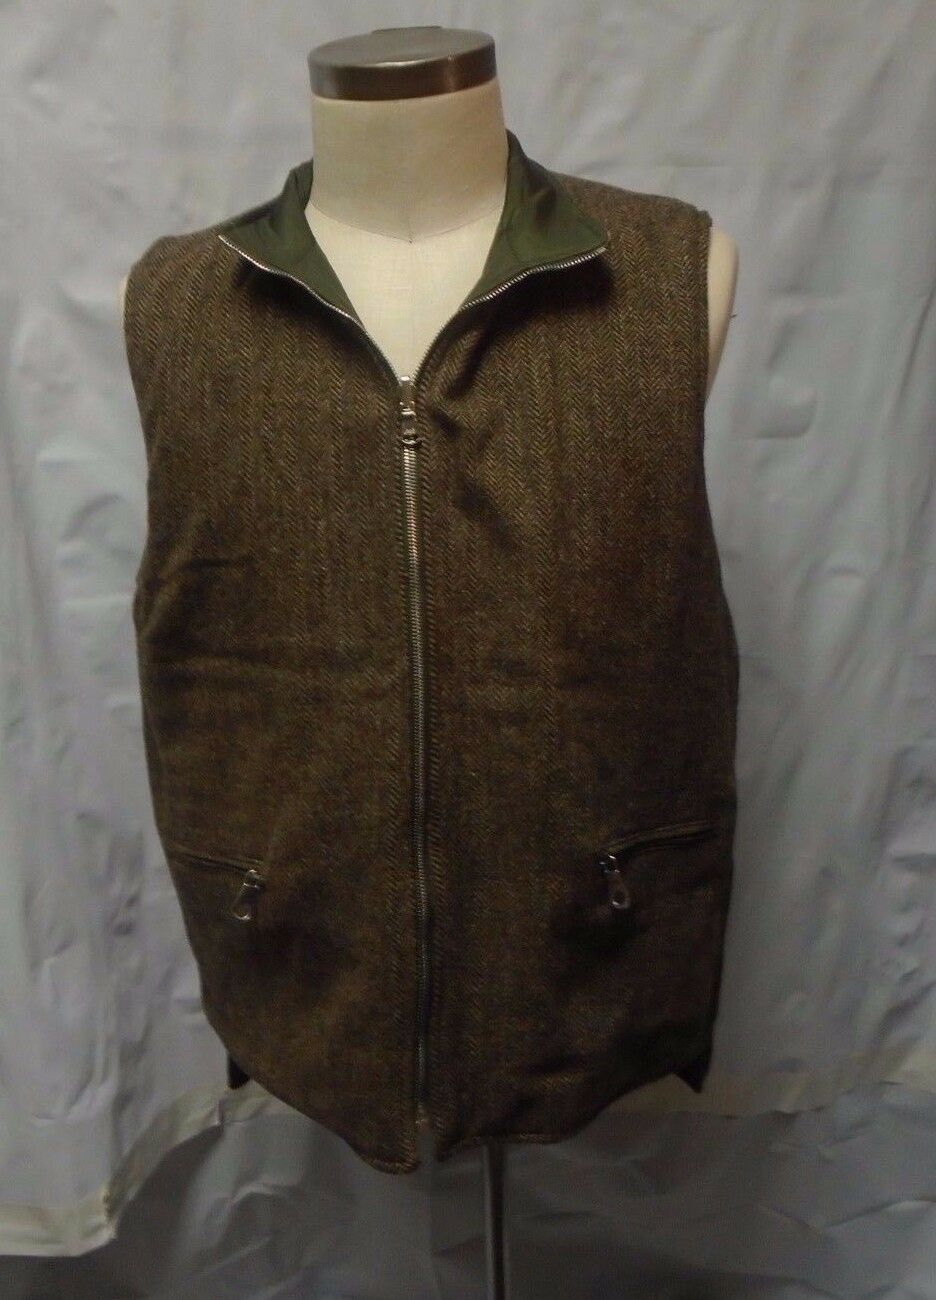 Mother Freedom Brown Tweed Reverible Nylon Quilted Zip Front Vest Men's M Medium